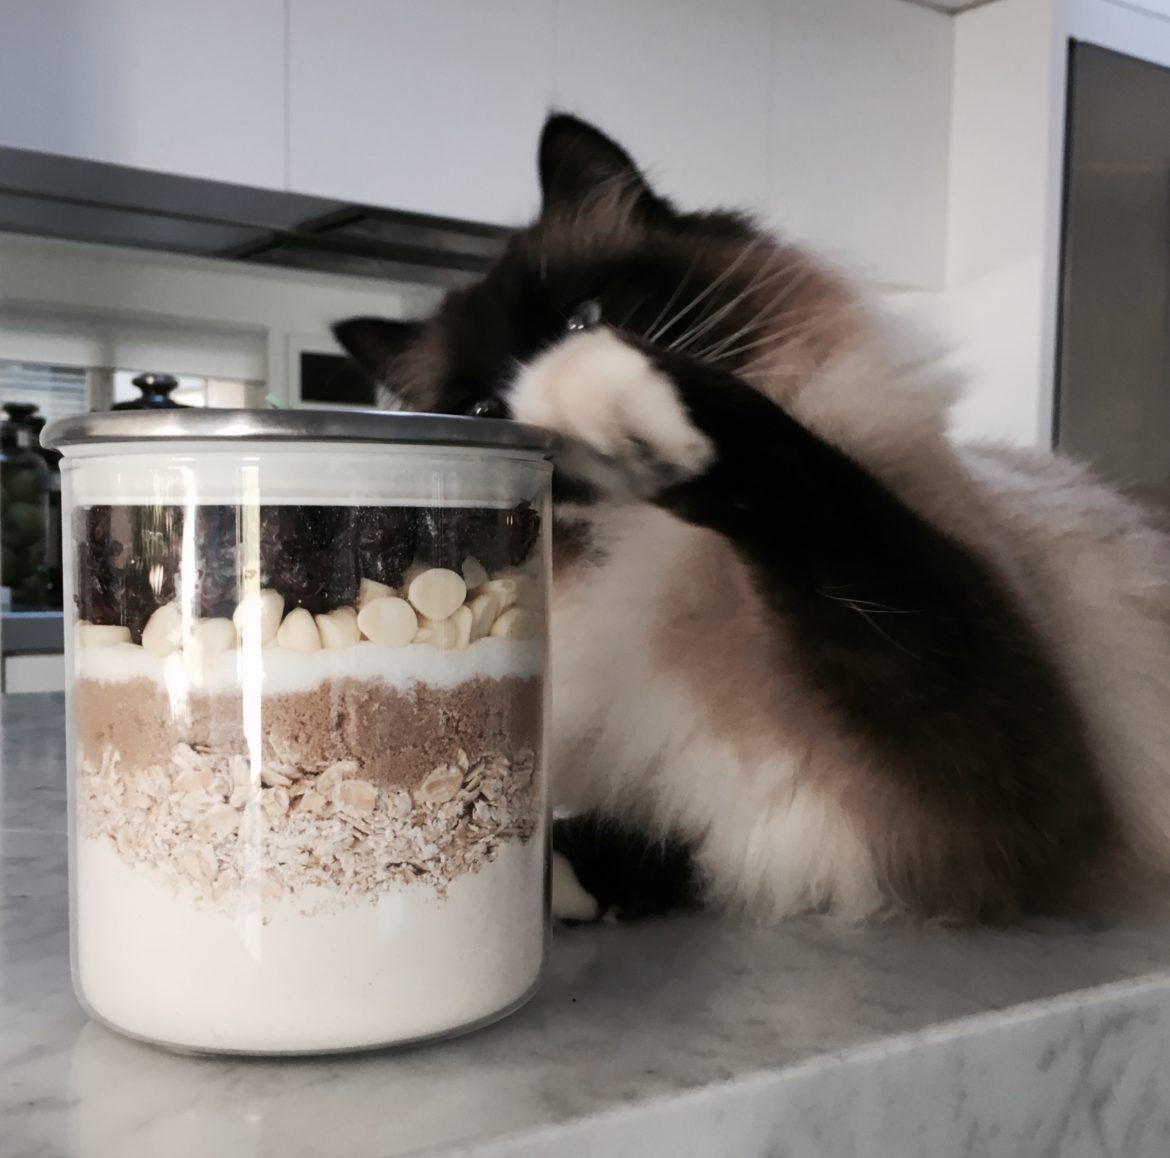 Image of a cat reaching out to a cookie mixture.